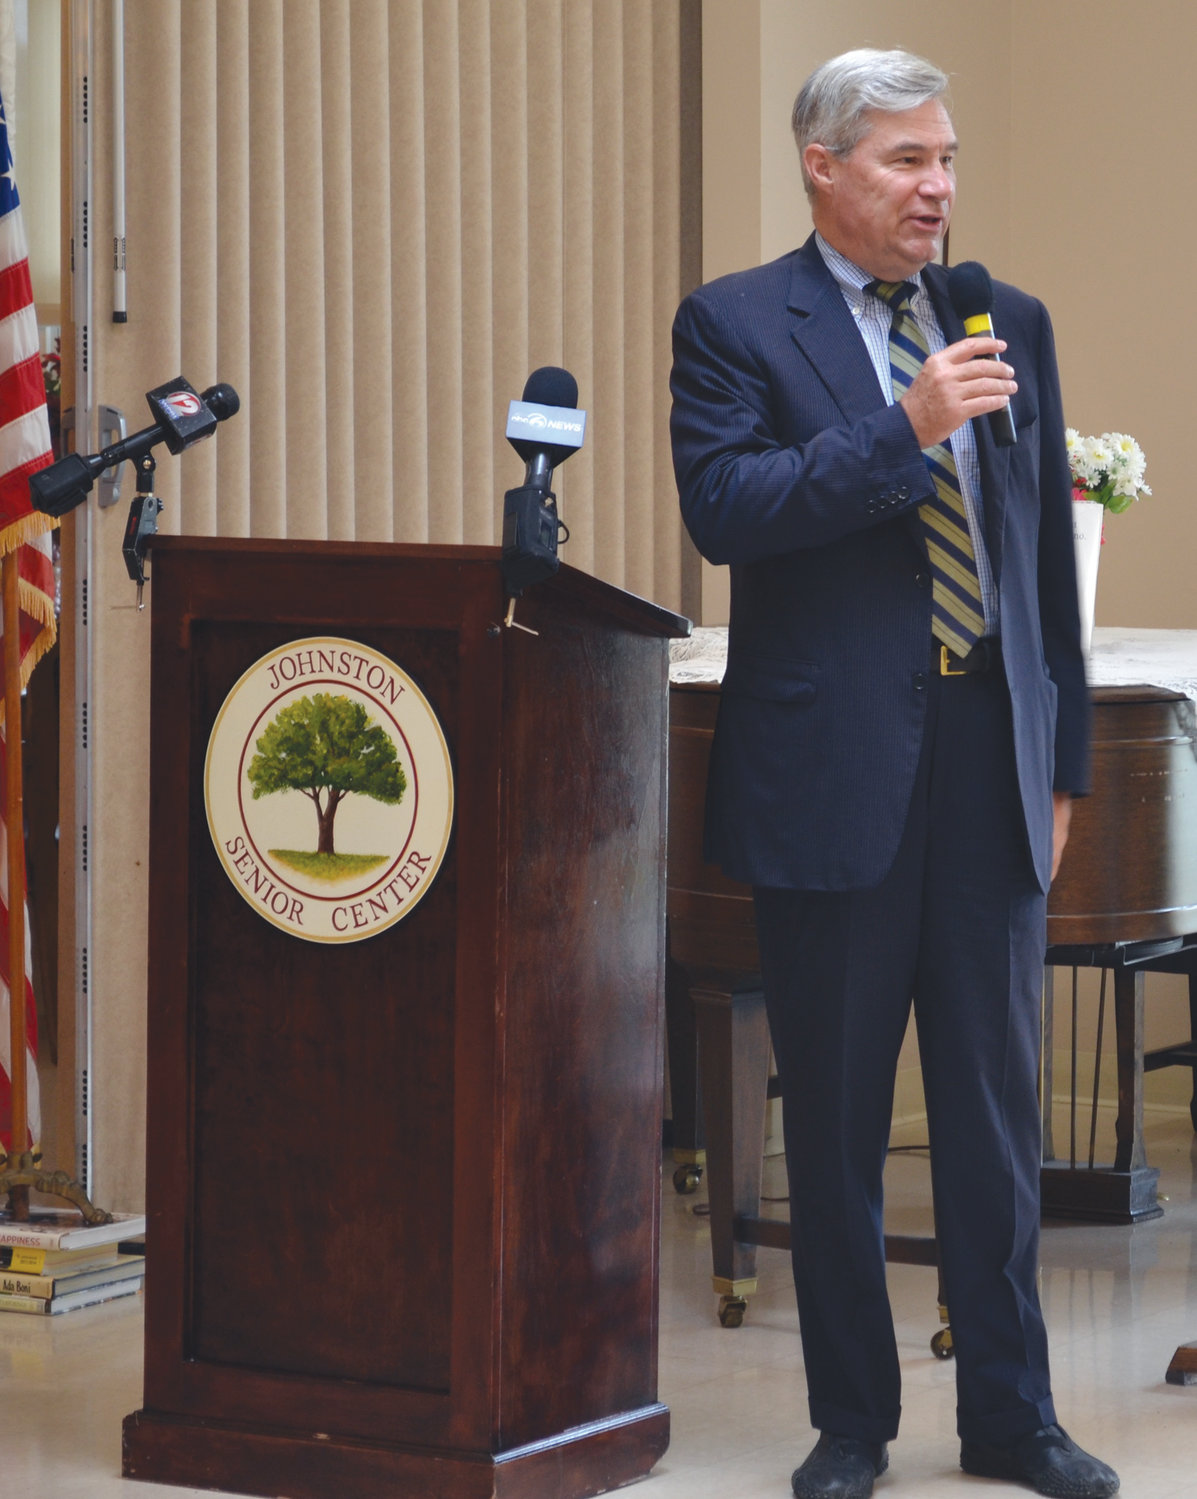 PAYING A VISIT: U.S. Sen. Sheldon Whitehouse dropped by the Johnston Senior Center on Wednesday morning to discuss legislation that would require an annual 3-percent Social Security cost-of-living adjustment, or COLA.